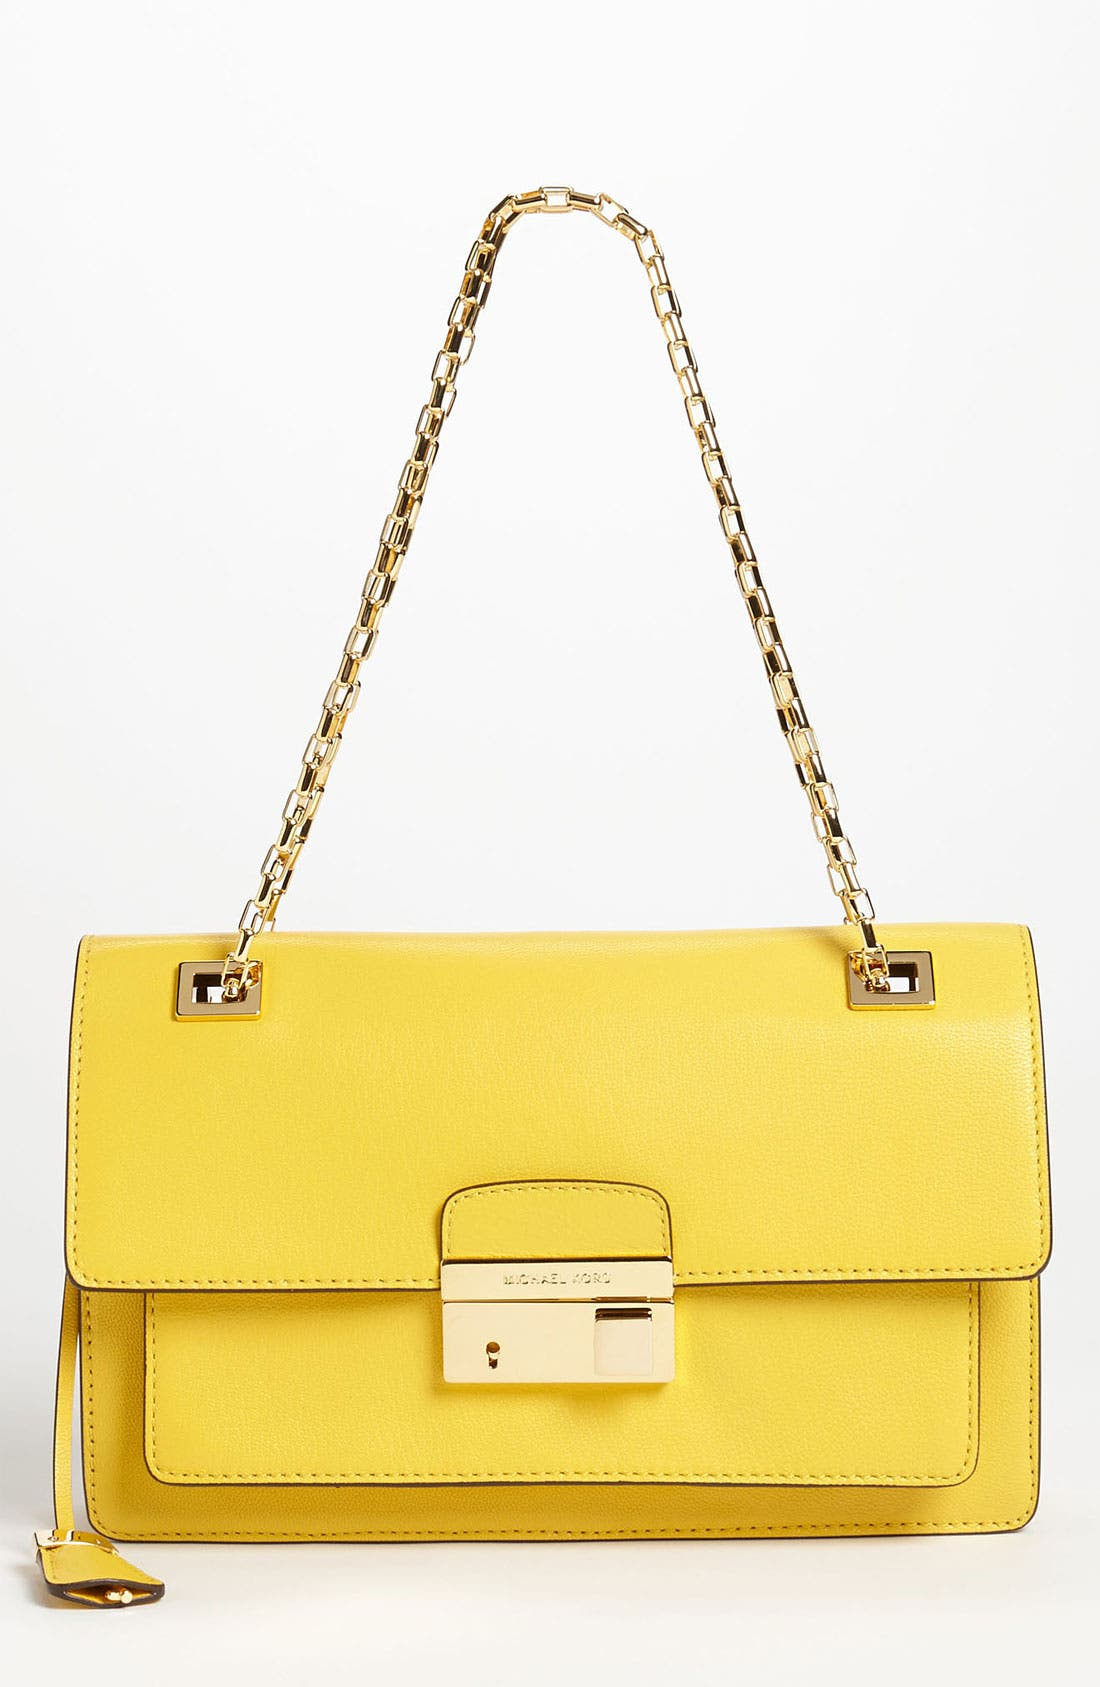 Alternate Image 1 Selected - Michael Kors 'Gia' Shoulder Bag